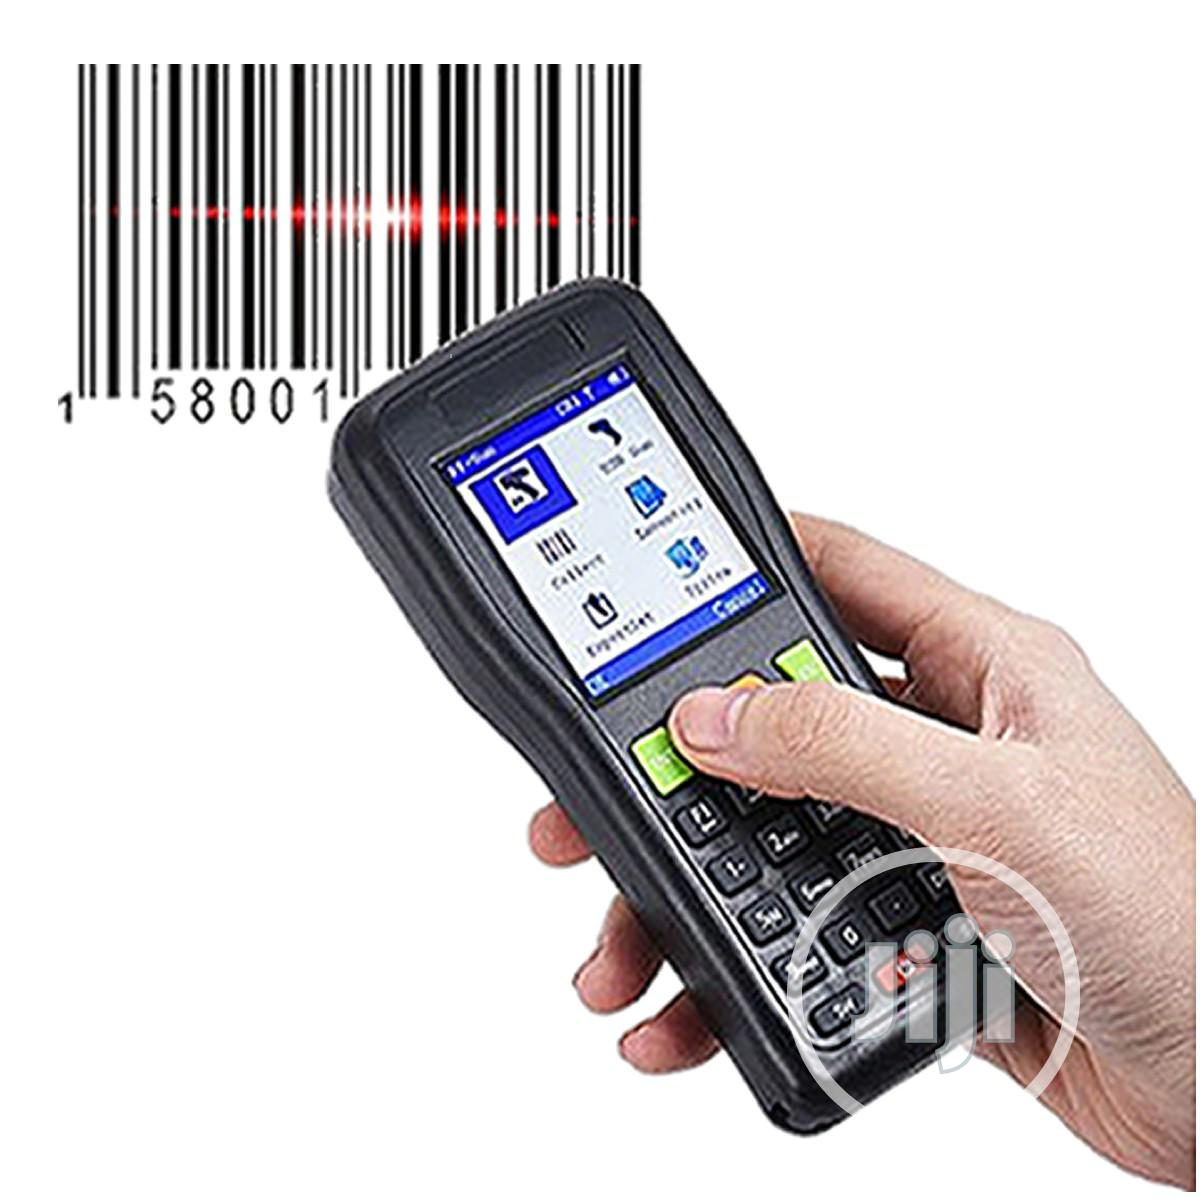 Archive: Wireless Inventory/Data Collector With Barcode Scanner